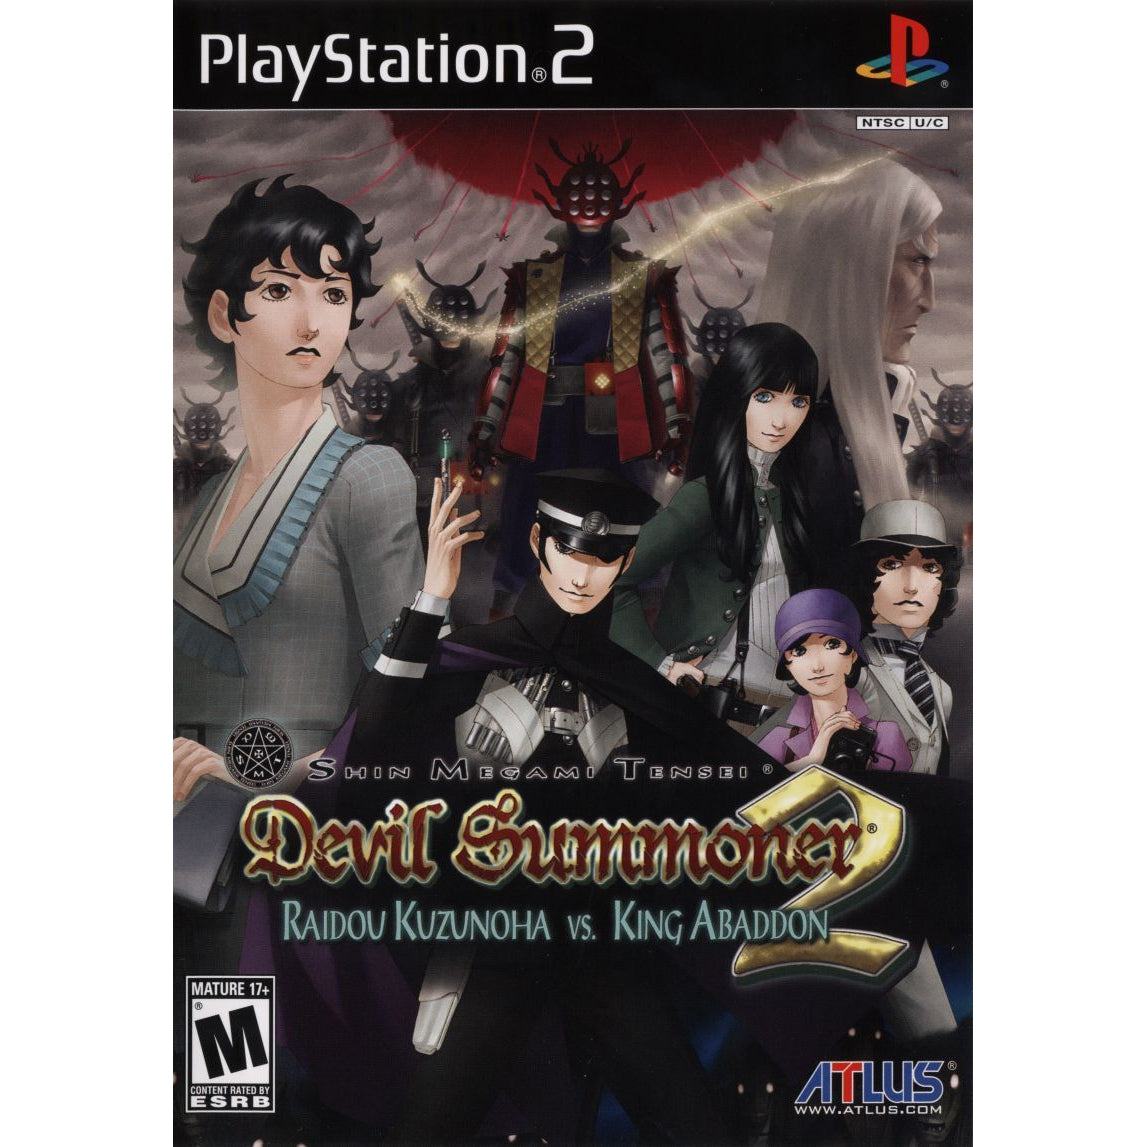 Shin Megami Tensei: Devil Summoner 2 - Raidou Kuzunoha vs. King Abaddon - PlayStation 2 (PS2) Game Complete - YourGamingShop.com - Buy, Sell, Trade Video Games Online. 120 Day Warranty. Satisfaction Guaranteed.